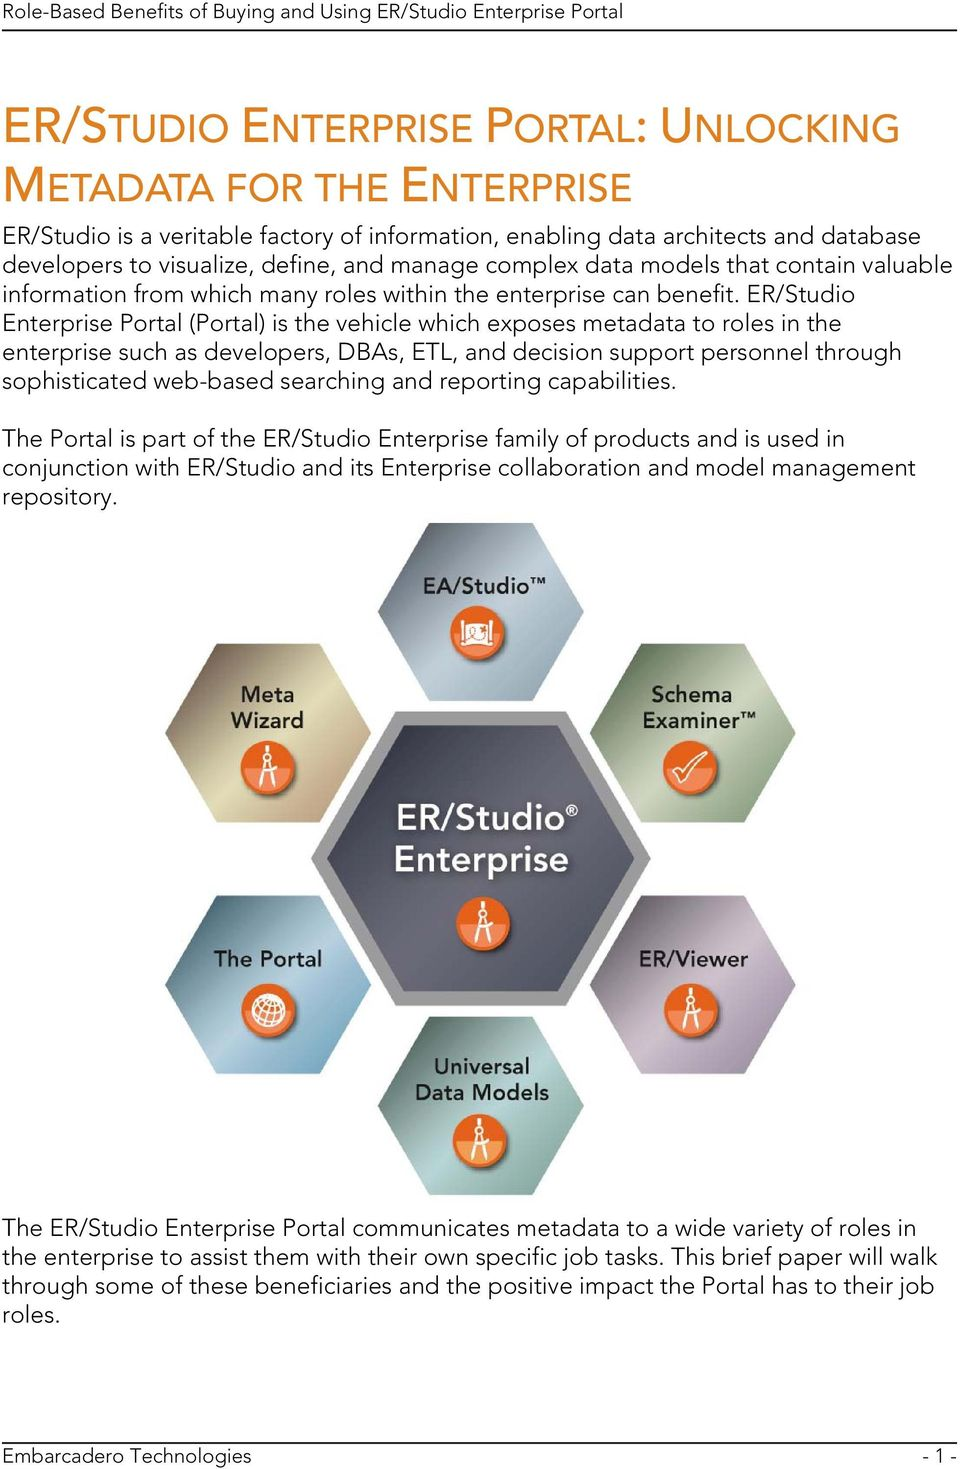 ER/Studio Enterprise Portal (Portal) is the vehicle which exposes metadata to roles in the enterprise such as developers, DBAs, ETL, and decision support personnel through sophisticated web-based